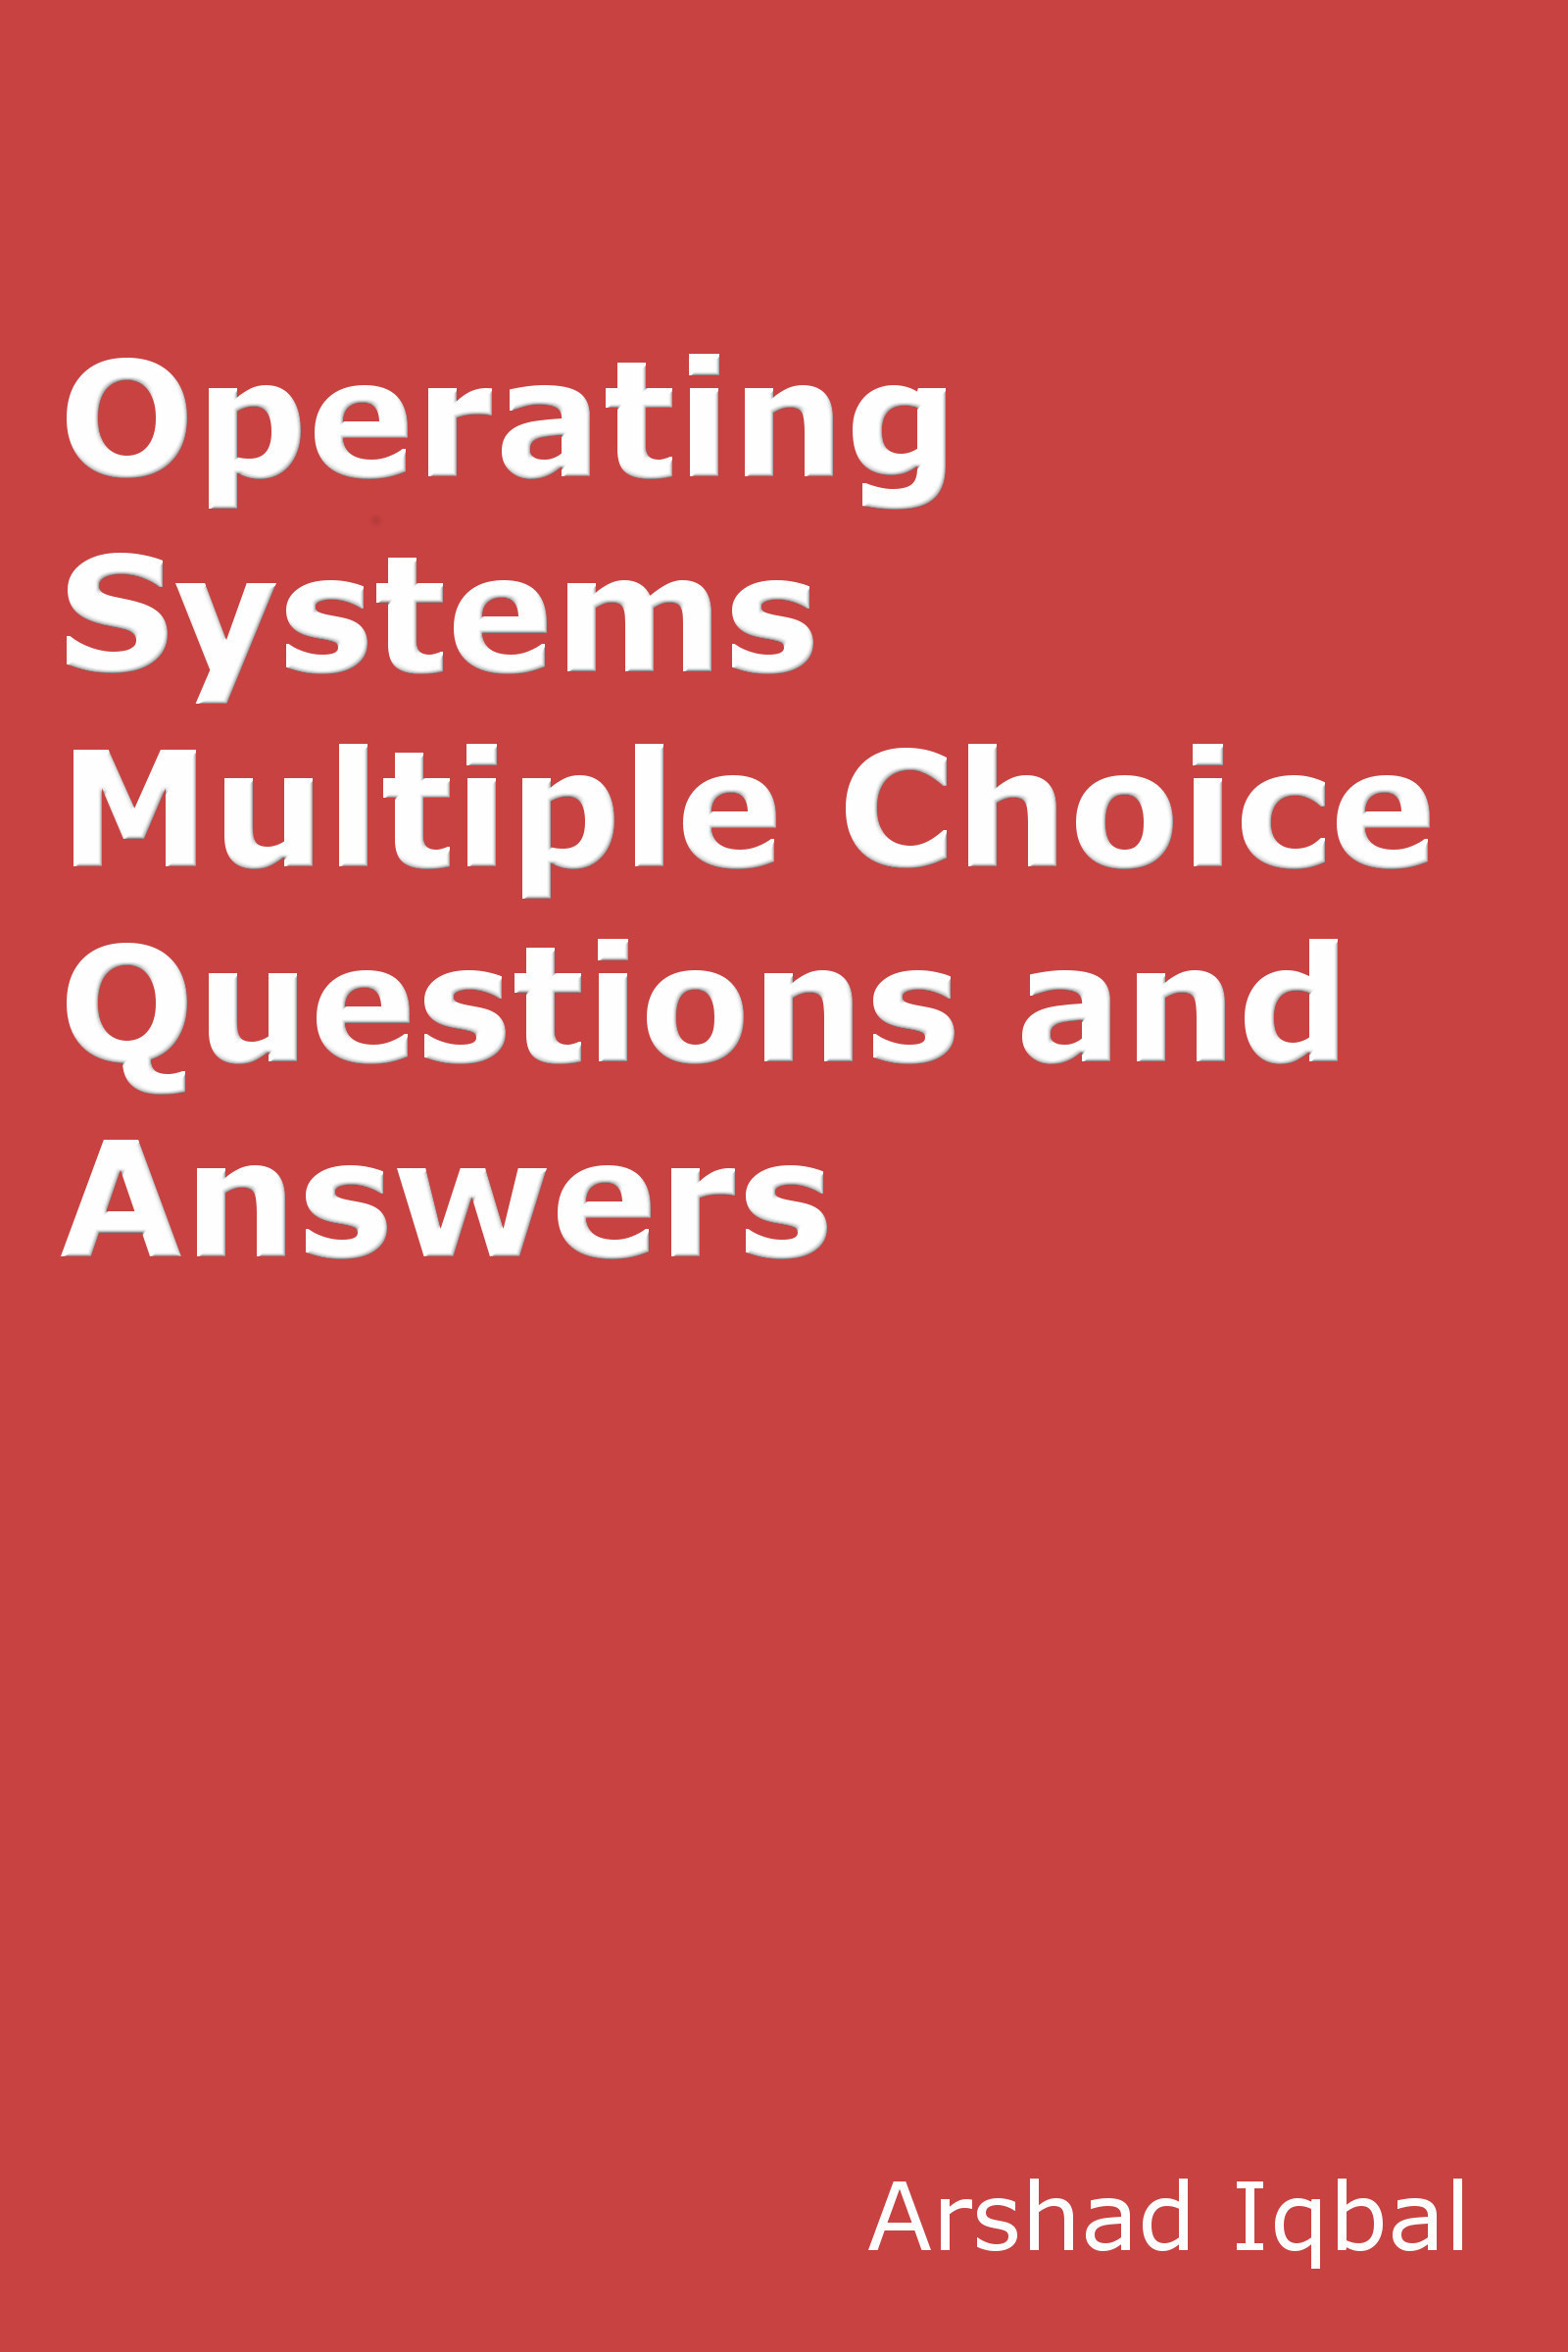 Operating Systems Quiz Questions Answers: Multiple Choice MCQ Practice Tests